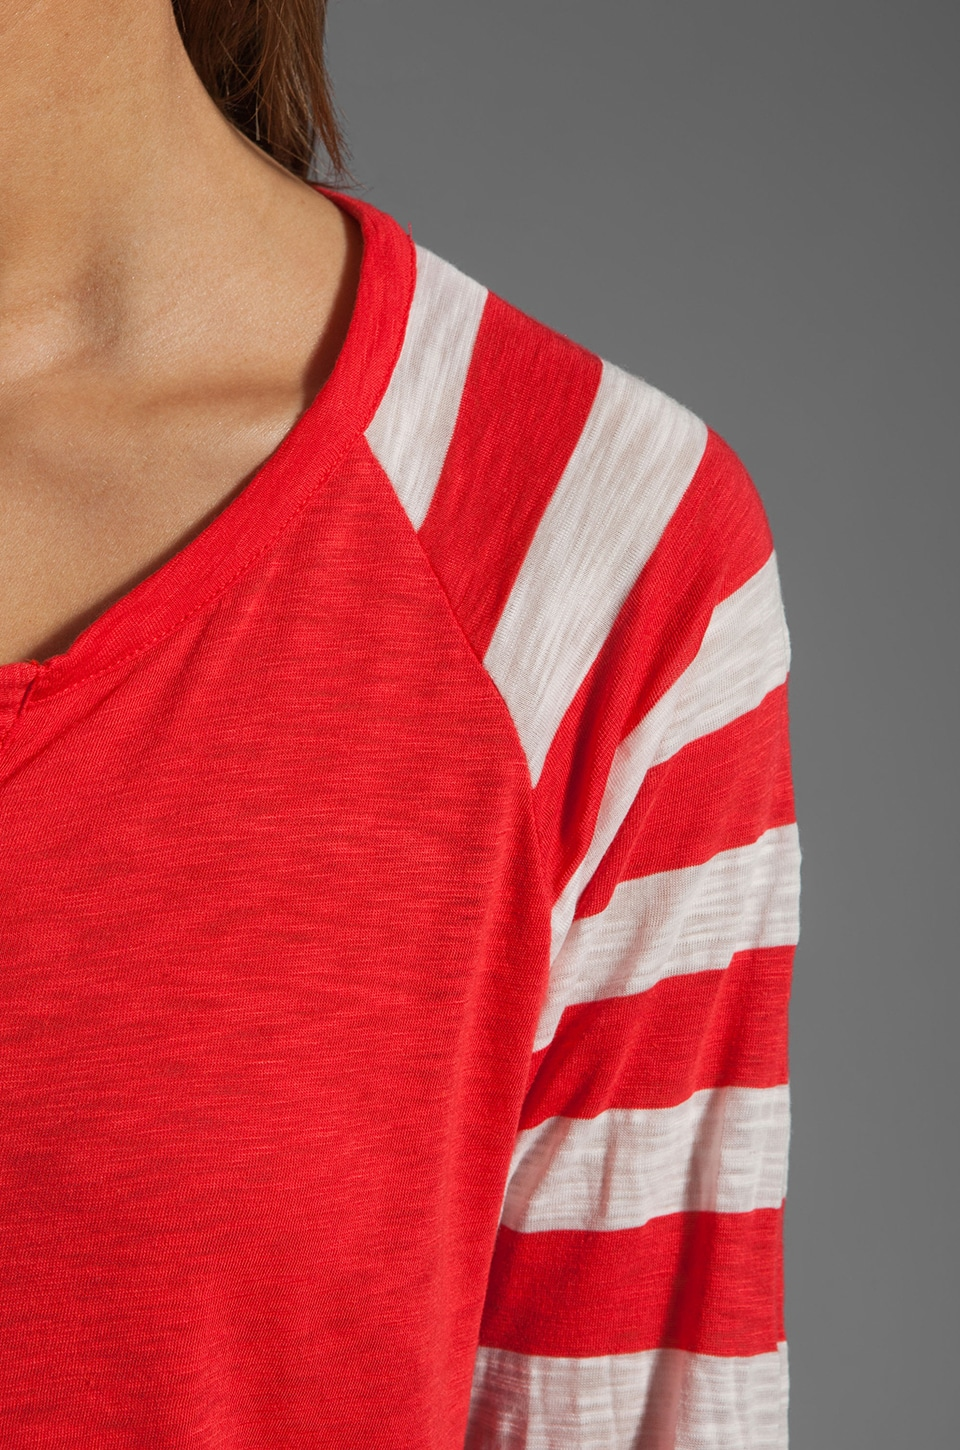 Splendid White Rugby Stripe Baseball Tee in Bonfire